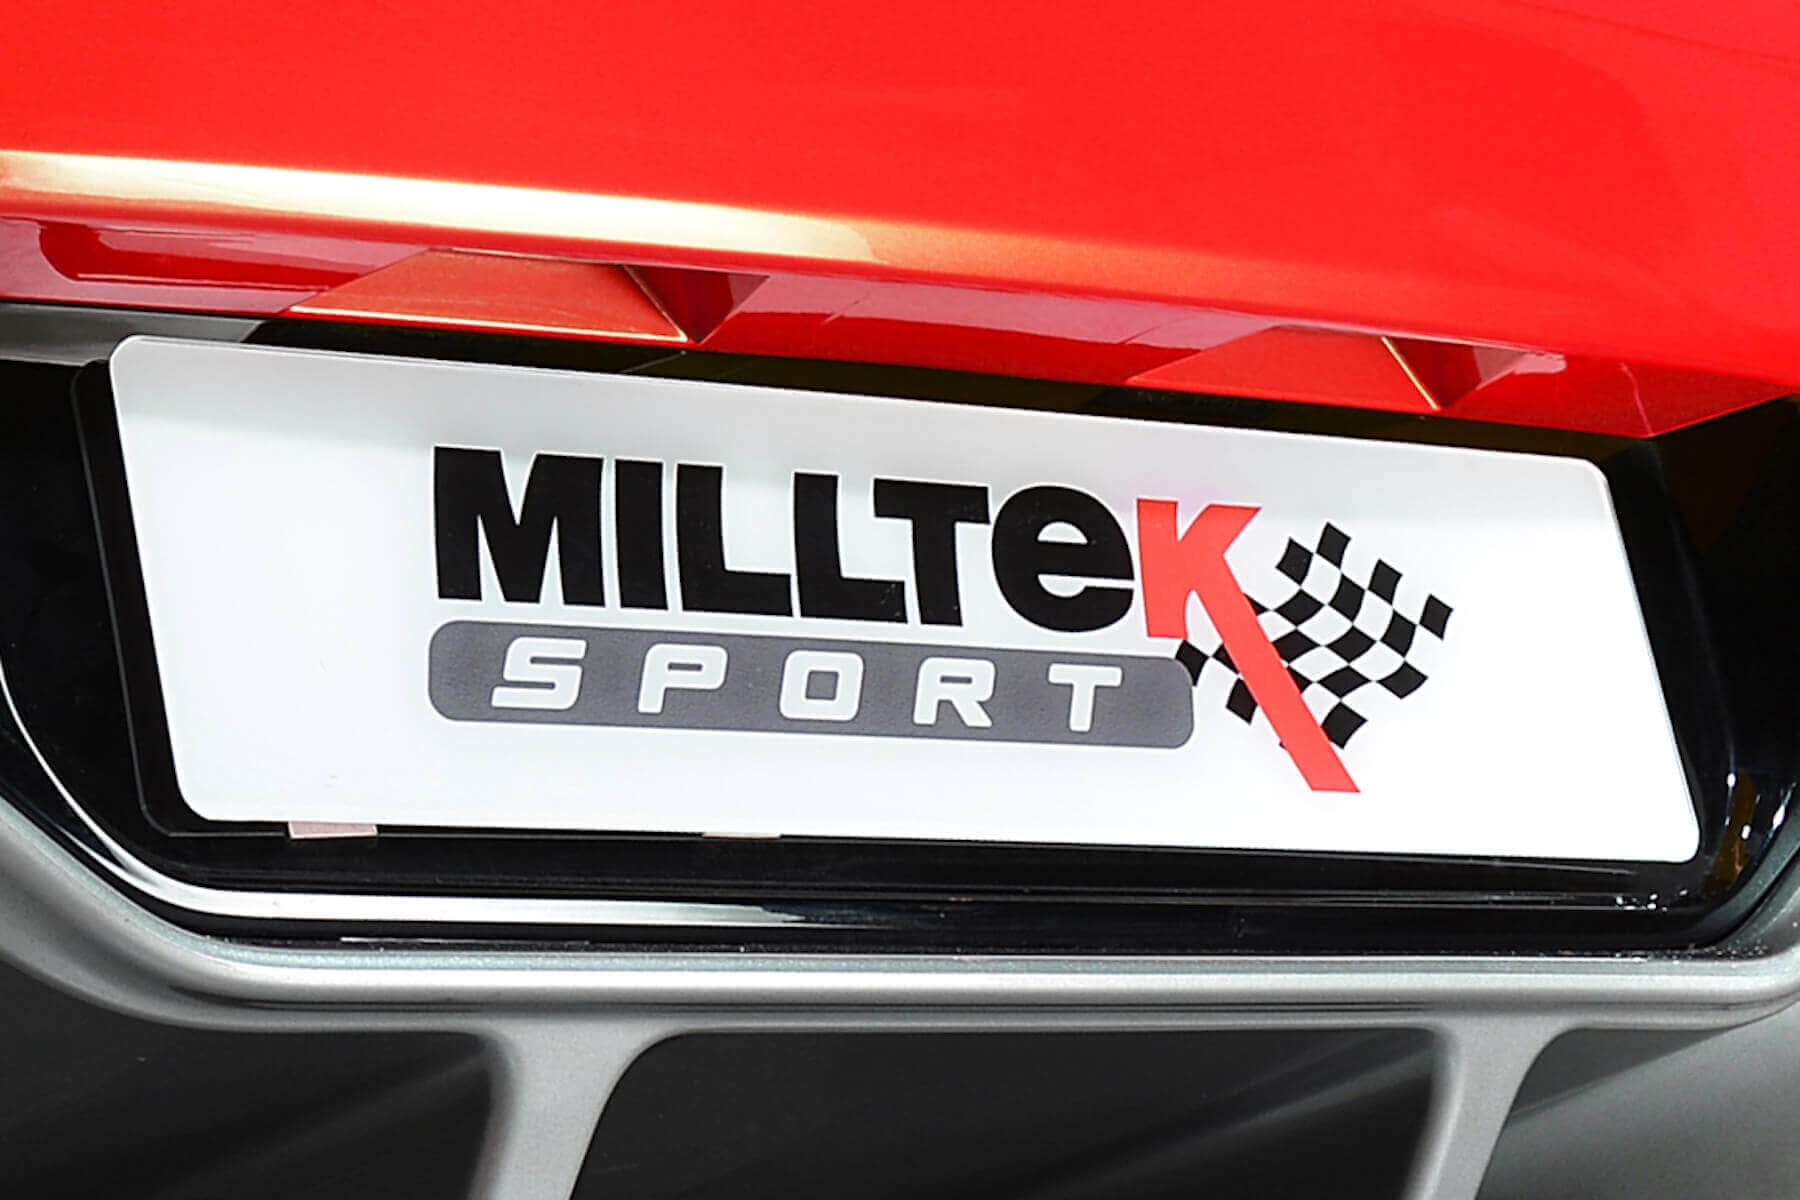 Milltek Sport White Number Plate For Owners & Fans Ideal for Shows Track Events Photo Shoots